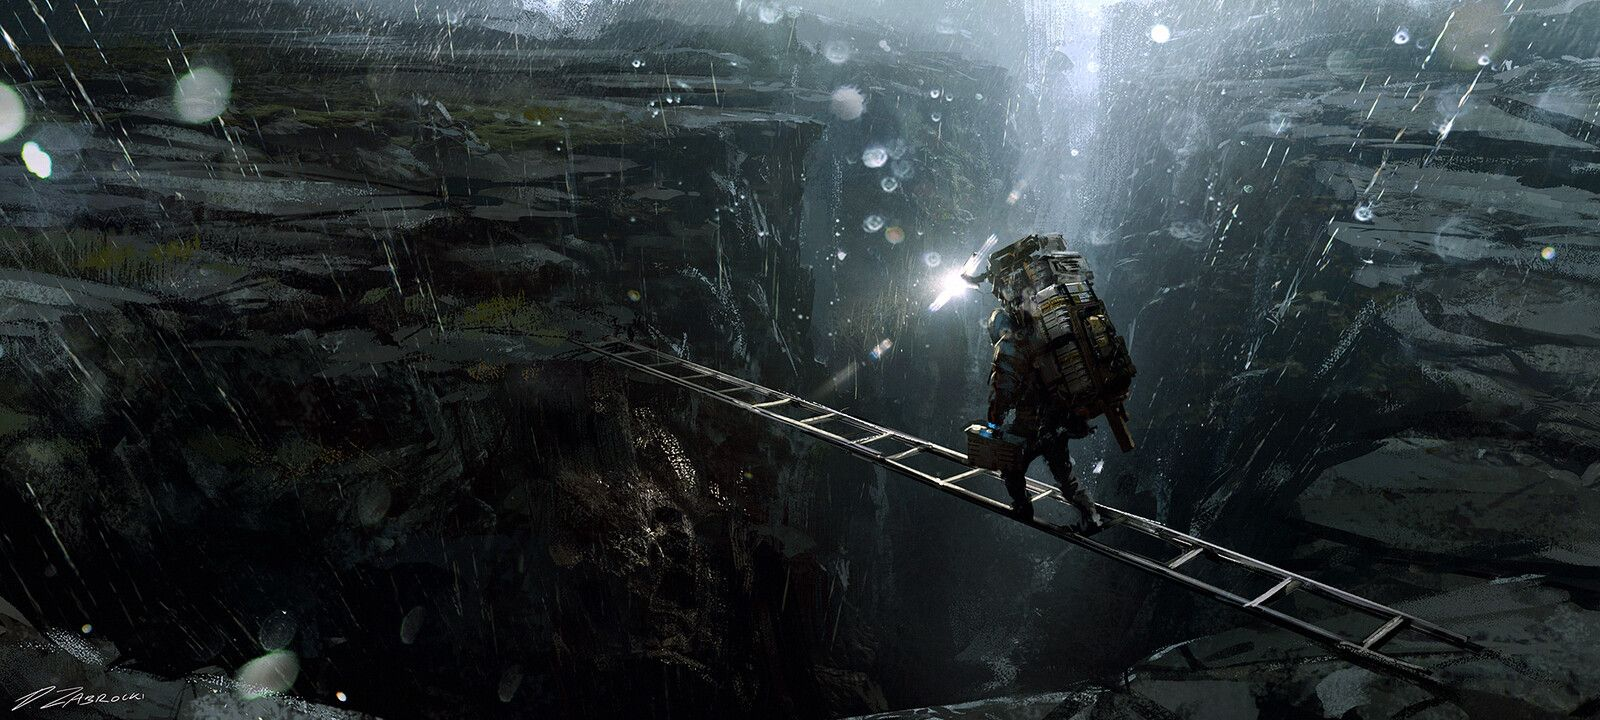 Death Stranding Passage Darek Zabrocki On Artstation At Https Www Artstation Com Artwork V1pmr3 Concept Art Concept Art World Video Game Art